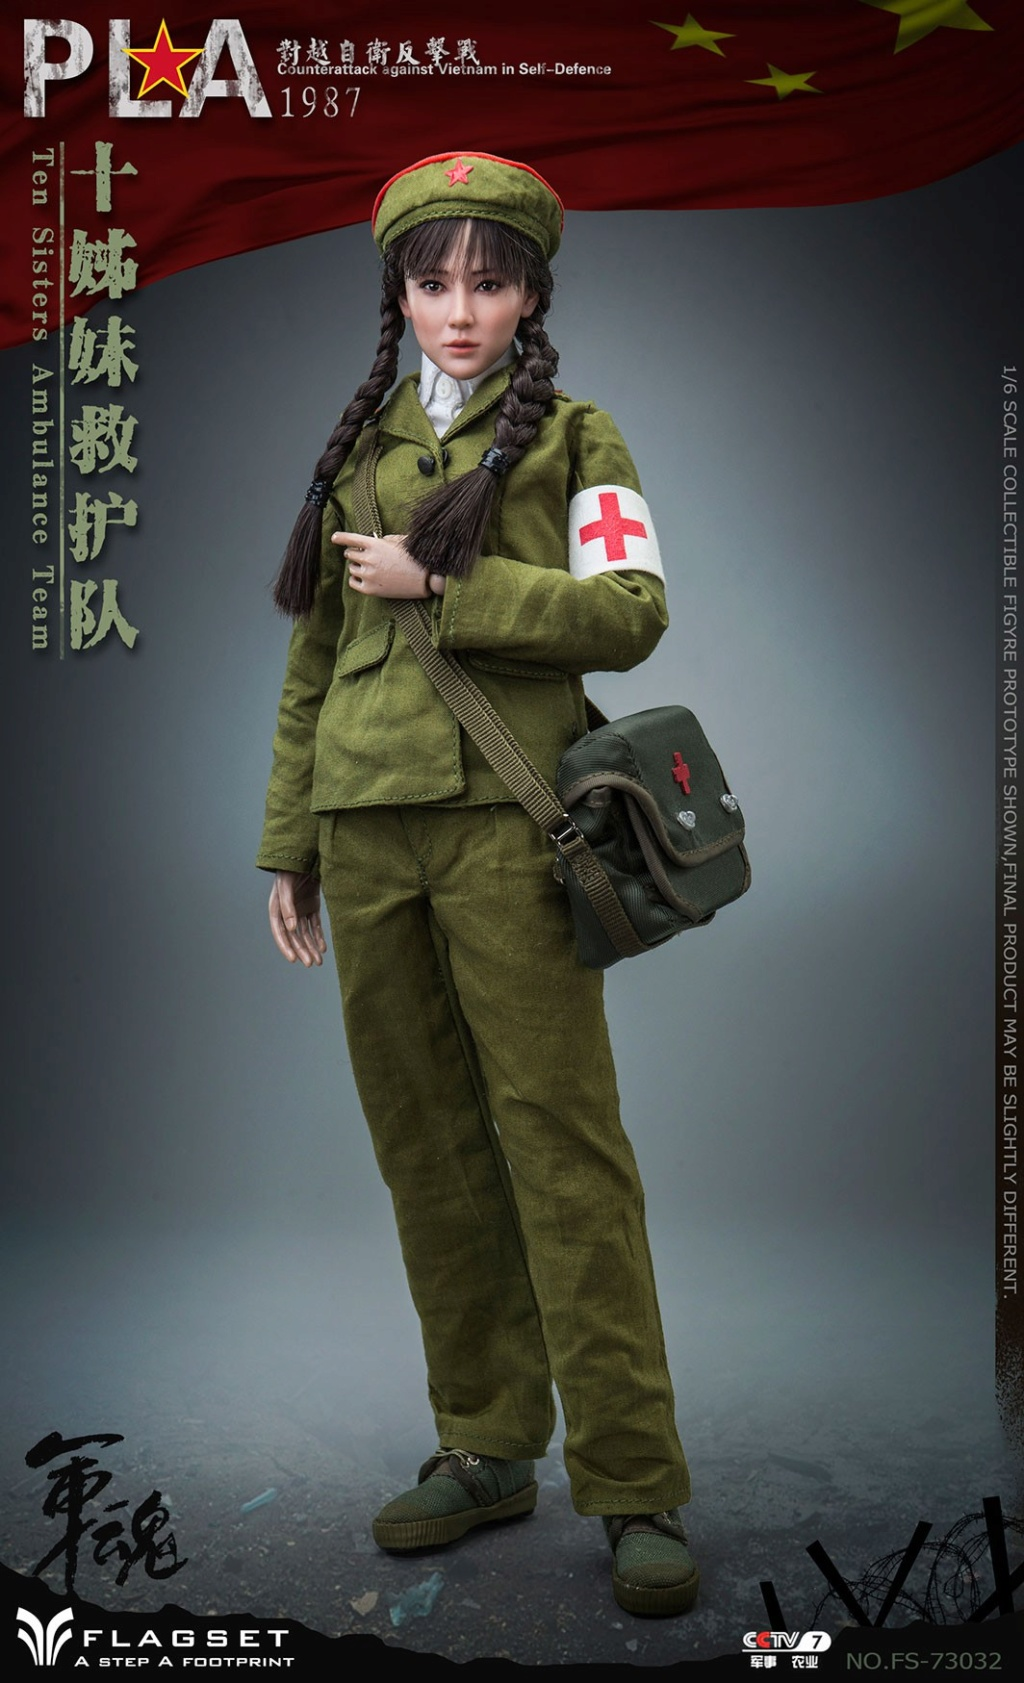 CounterAttack - NEW PRODUCT: Flagset: 1/6 counterattack against Vietnam-female soldiers of the ten sisters rescue team of the Chinese People's Liberation Army (FS73032#) 06540810